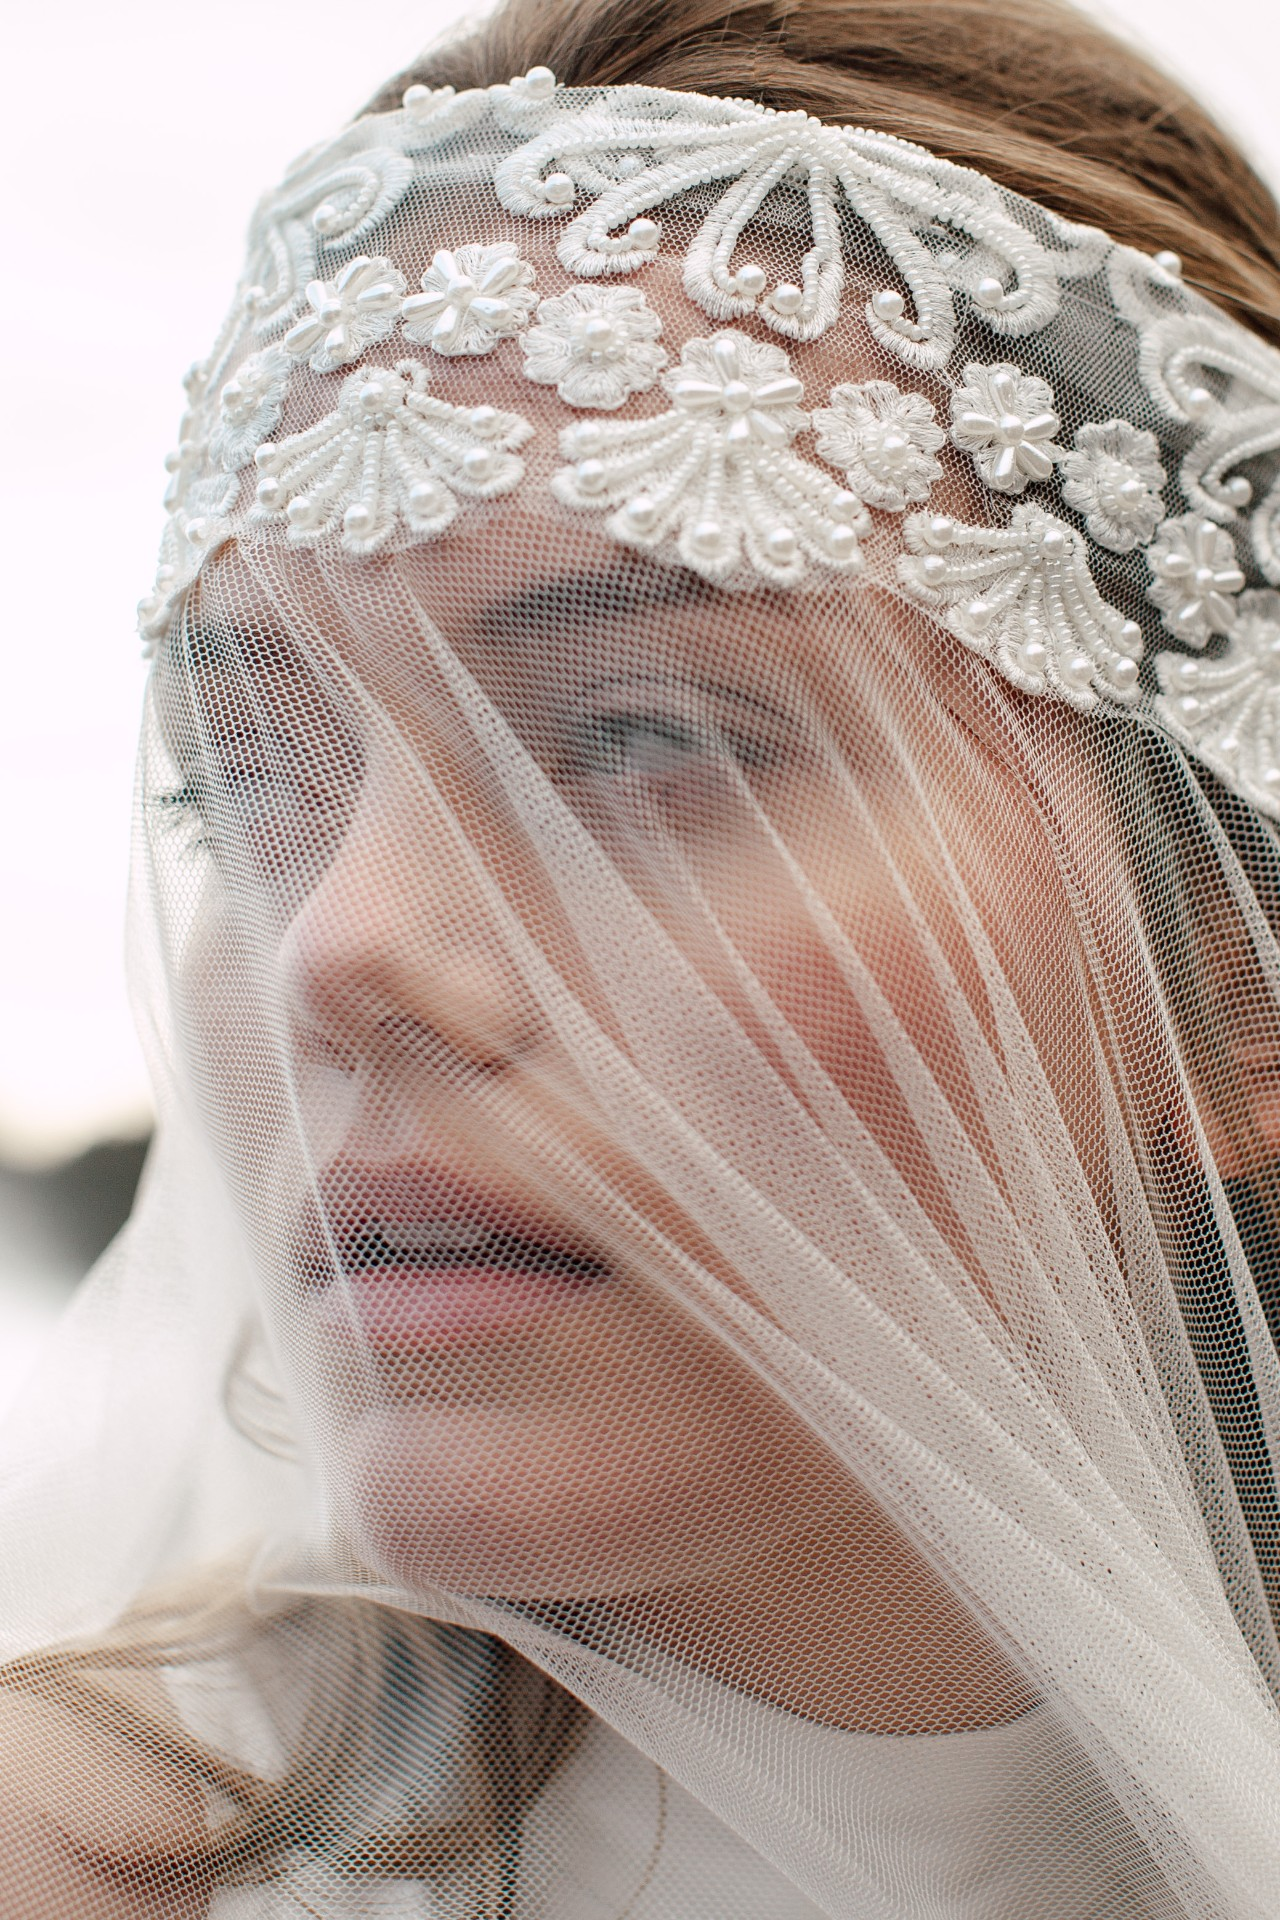 Ritual Unions Bridal Veils & Accessories From the BLOW 2020 Collection